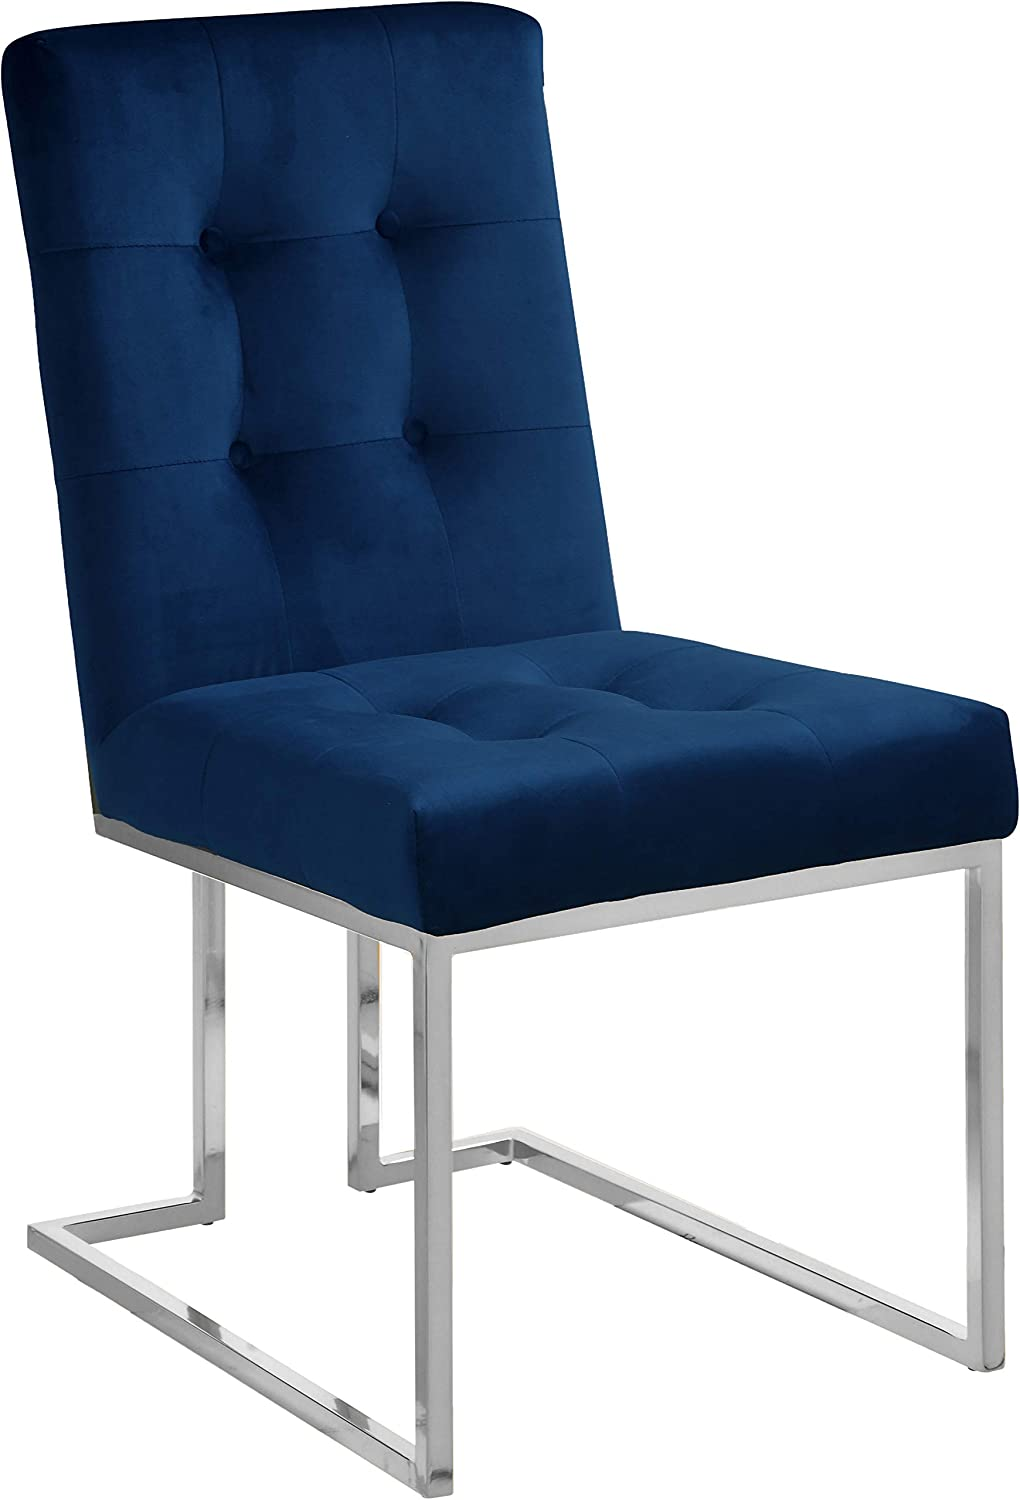 Meridian Furniture Alexis Collection Modern Contemporary Velvet Upholstered Dining Chair With Luxurious Deep Button Tufting And Polished Chrome Metal Frame Set Of 2 18 5 W X 25 D X 36 5 H Navy Chairs Amazon Com